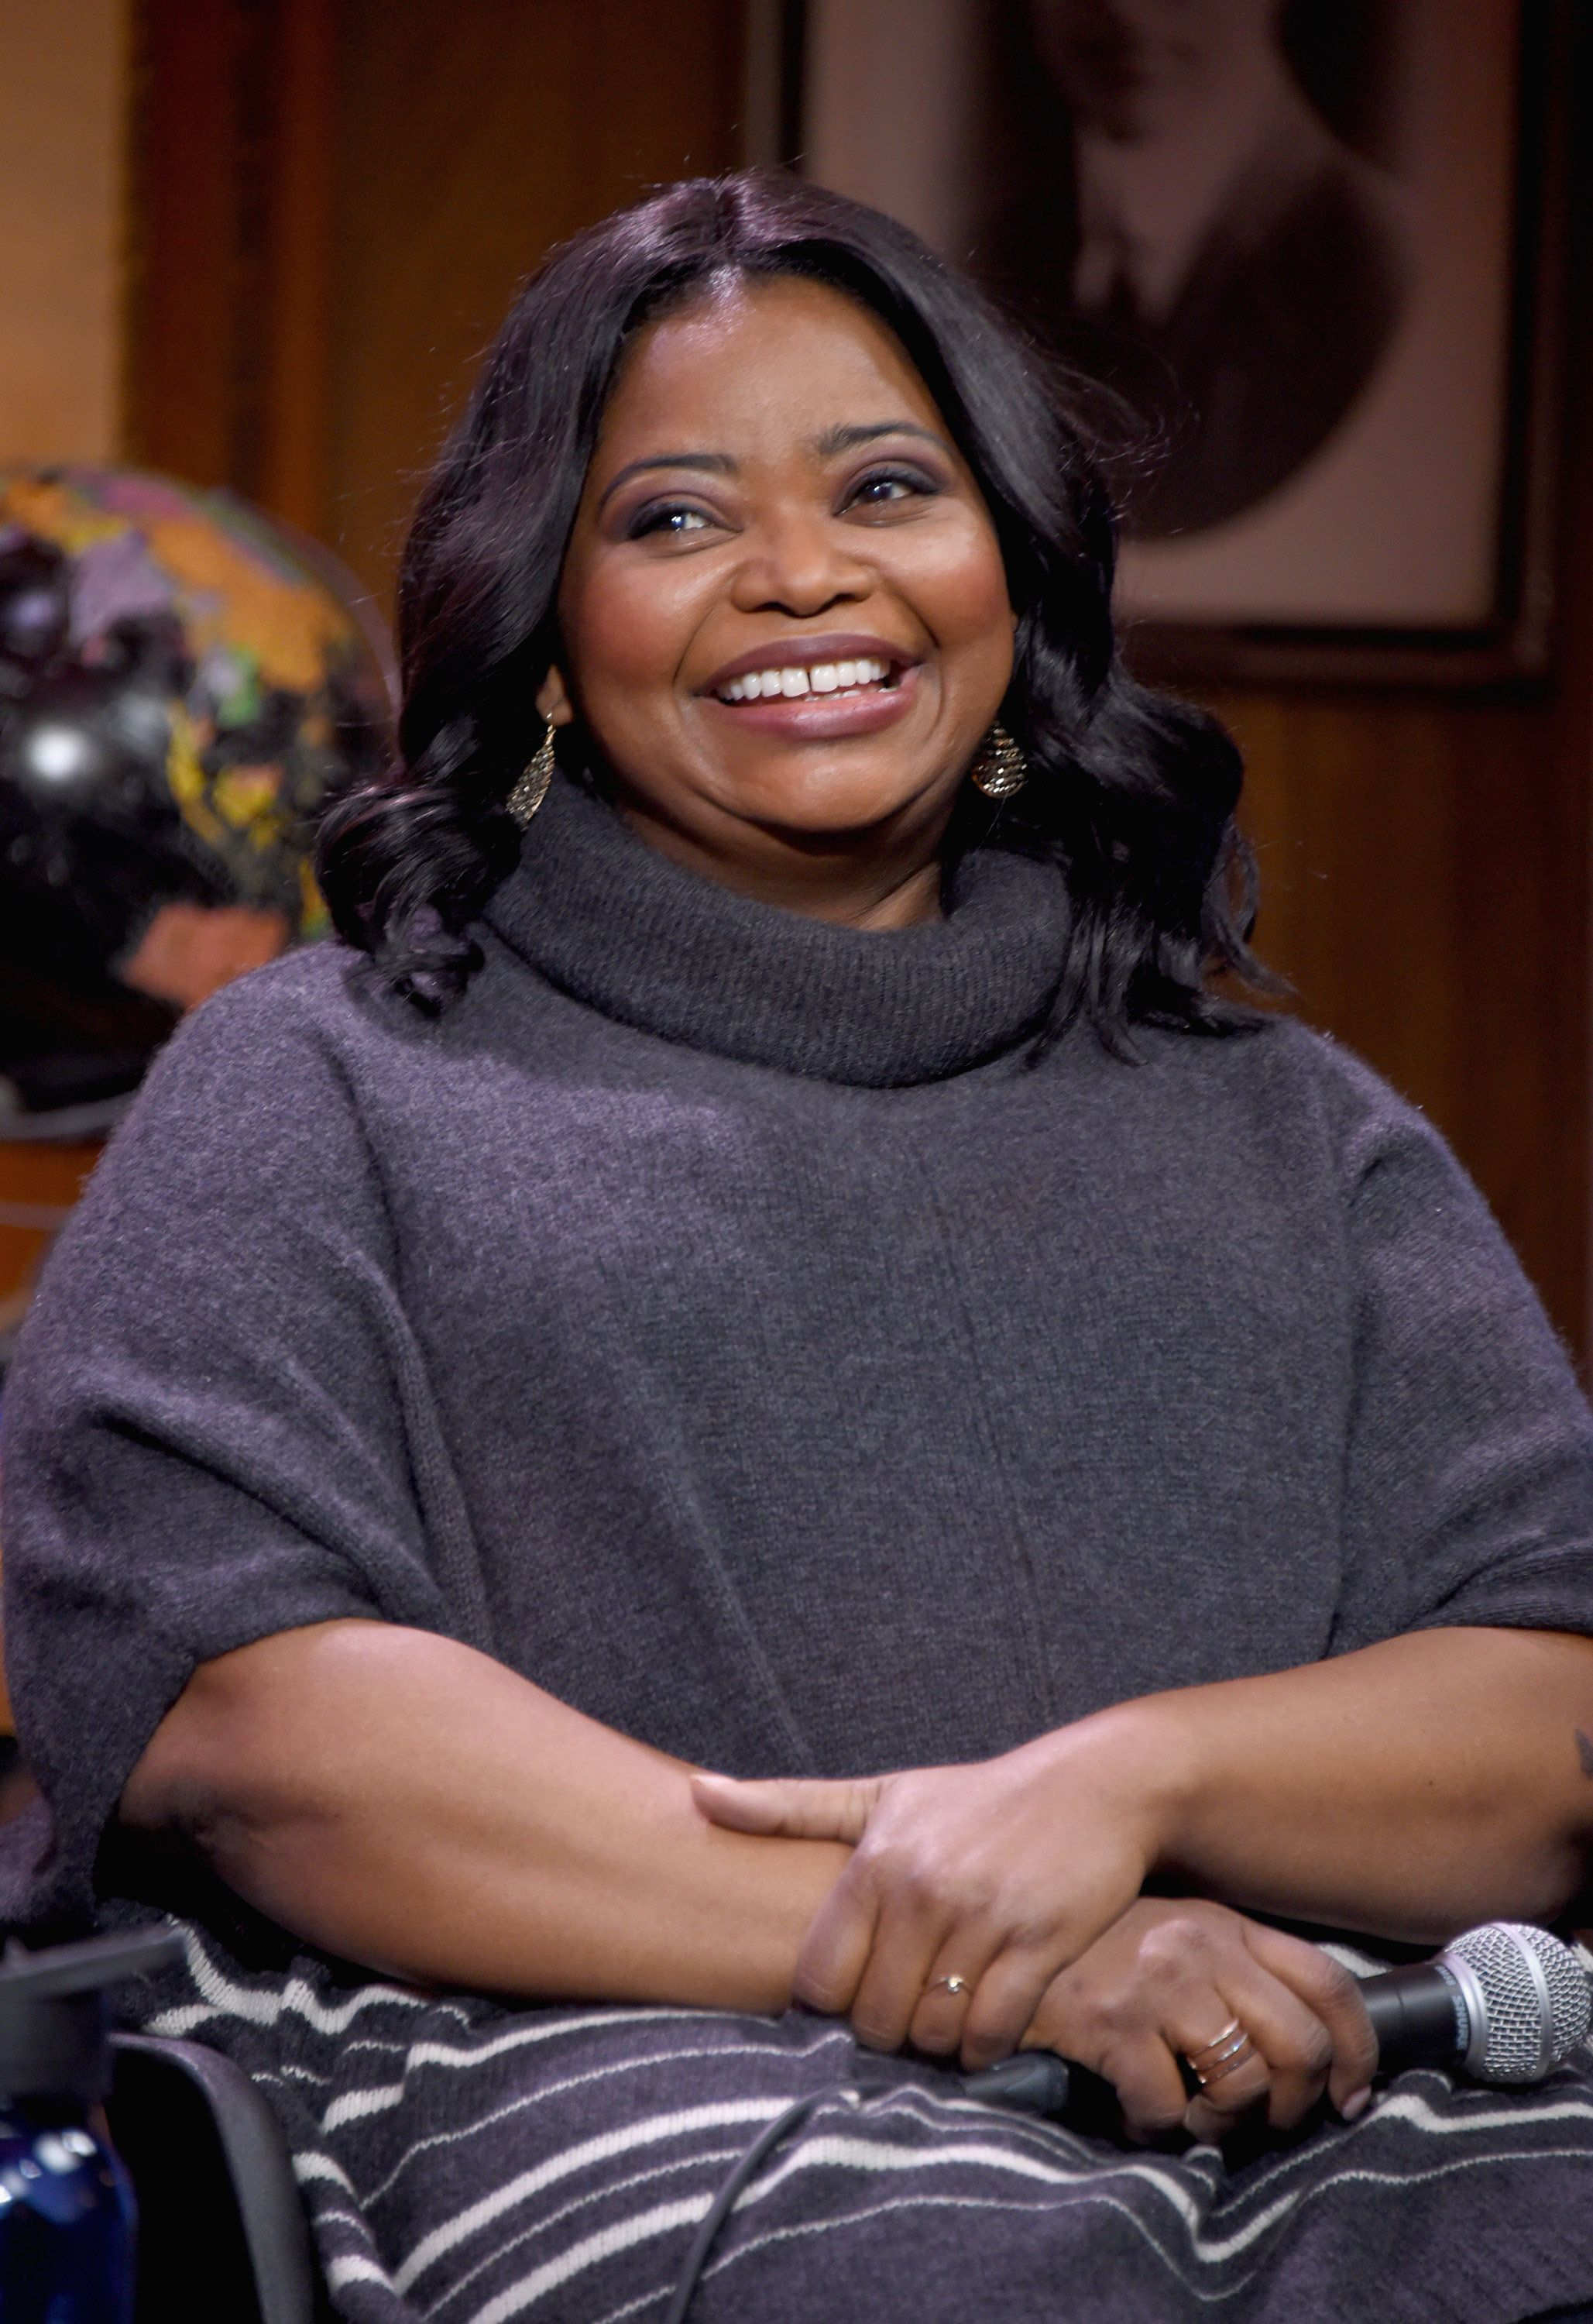 PARK CITY, UT - JANUARY 23:  Actor Octavia Spencer attends the Sloane Panel: Ways Of Seeing during the 2018 Sundance Film Festiva at Filmmaker Lodge on January 23, 2018 in Park City, Utah.  (Photo by Michael Loccisano/Getty Images)